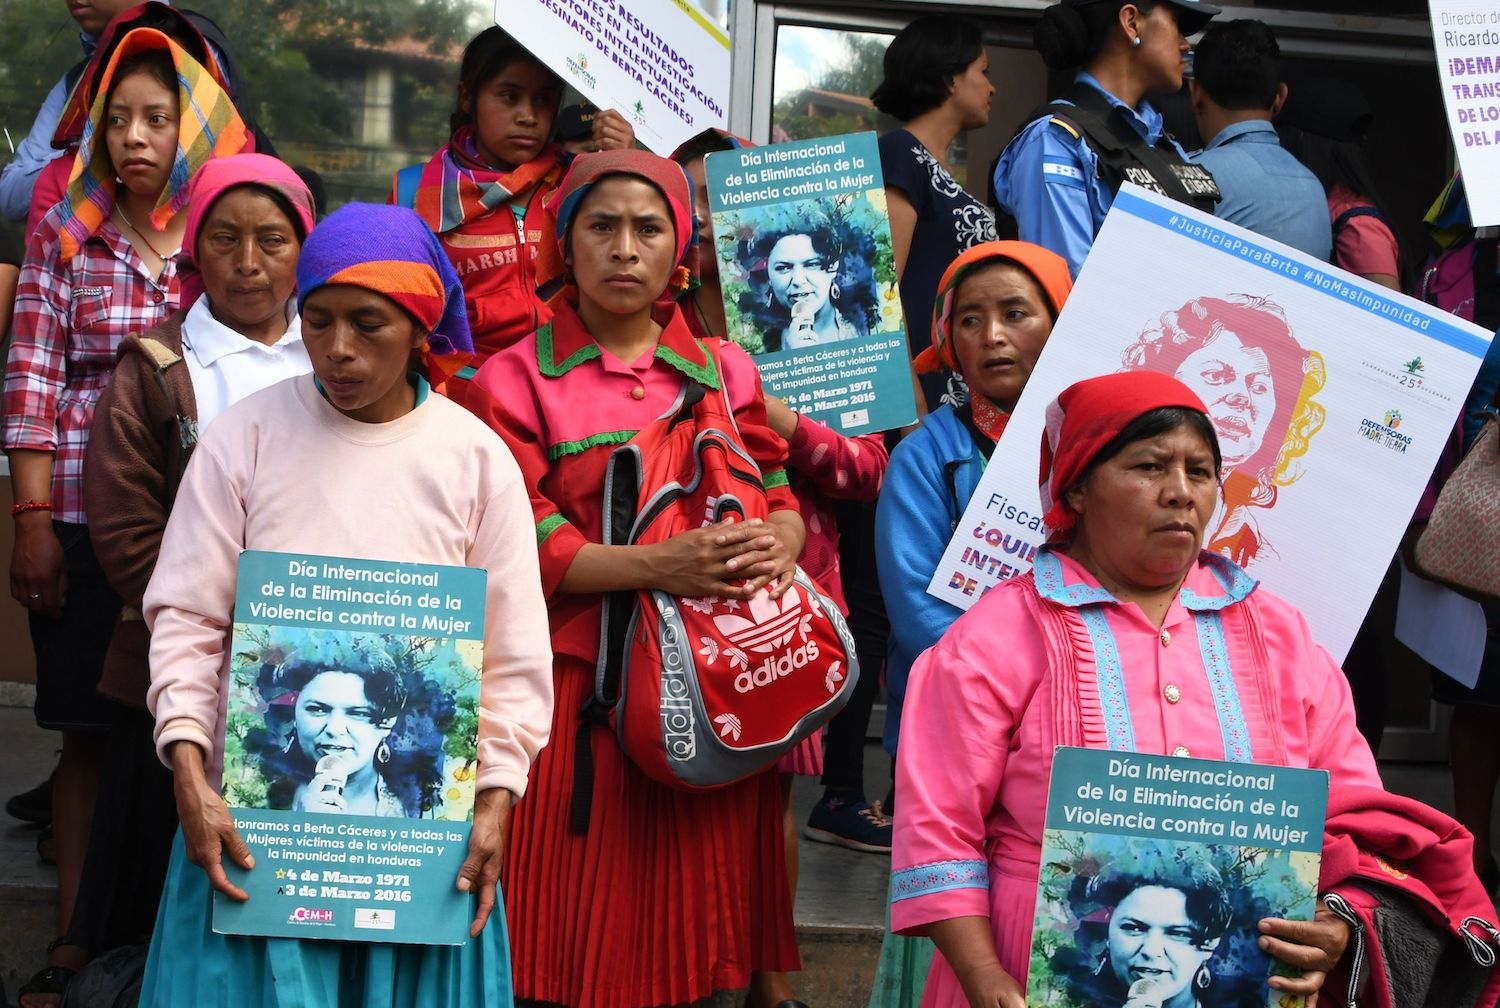 Women take part in a protest to demand justice in the murder of Honduran activist Berta Caceres at the Public Ministry headquarters in Tegucigalpa on March 2, 2018.